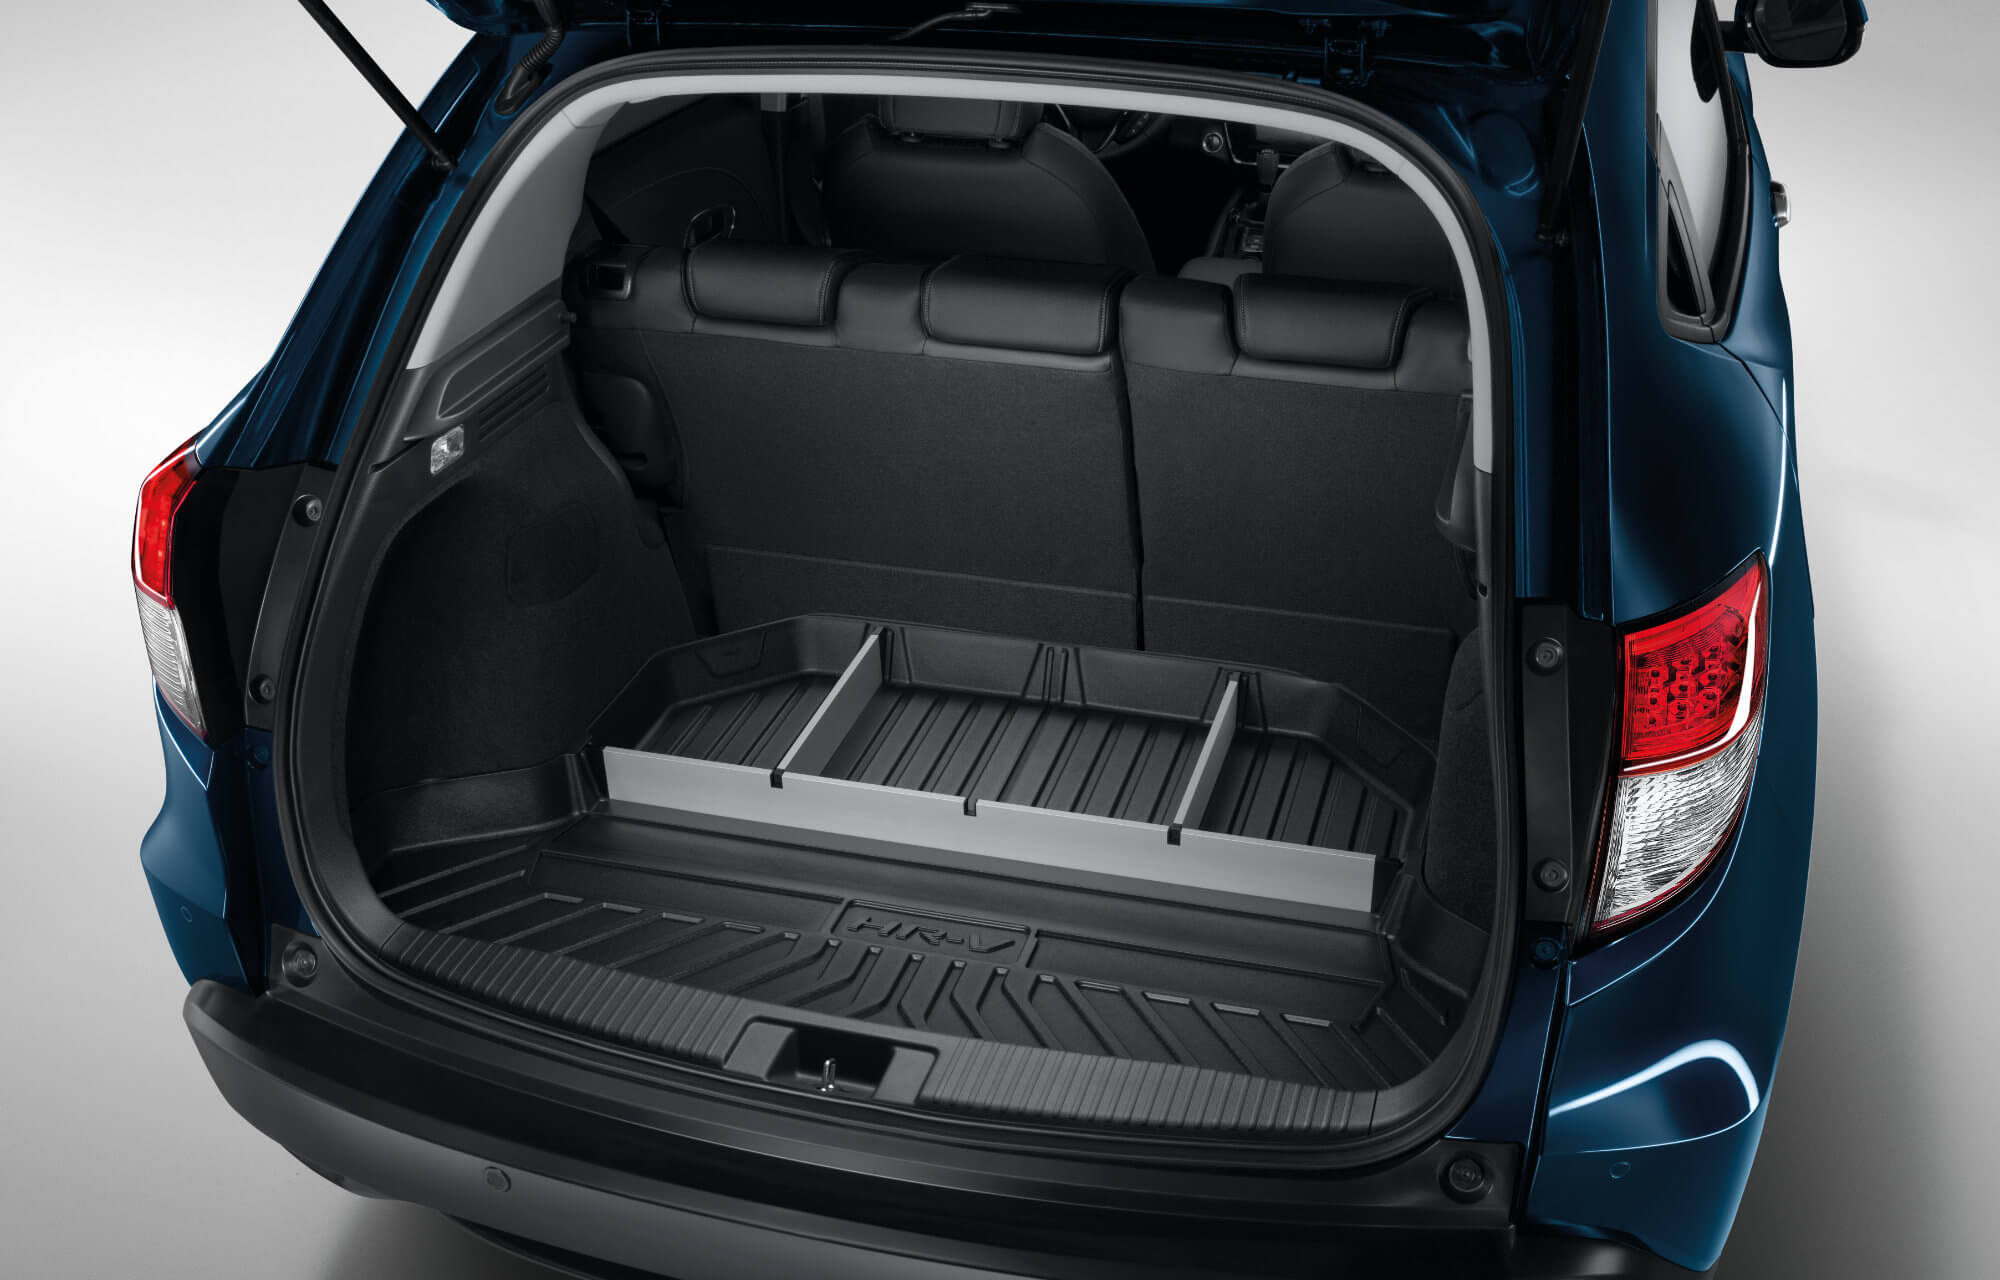 Boot Tray with Dividers